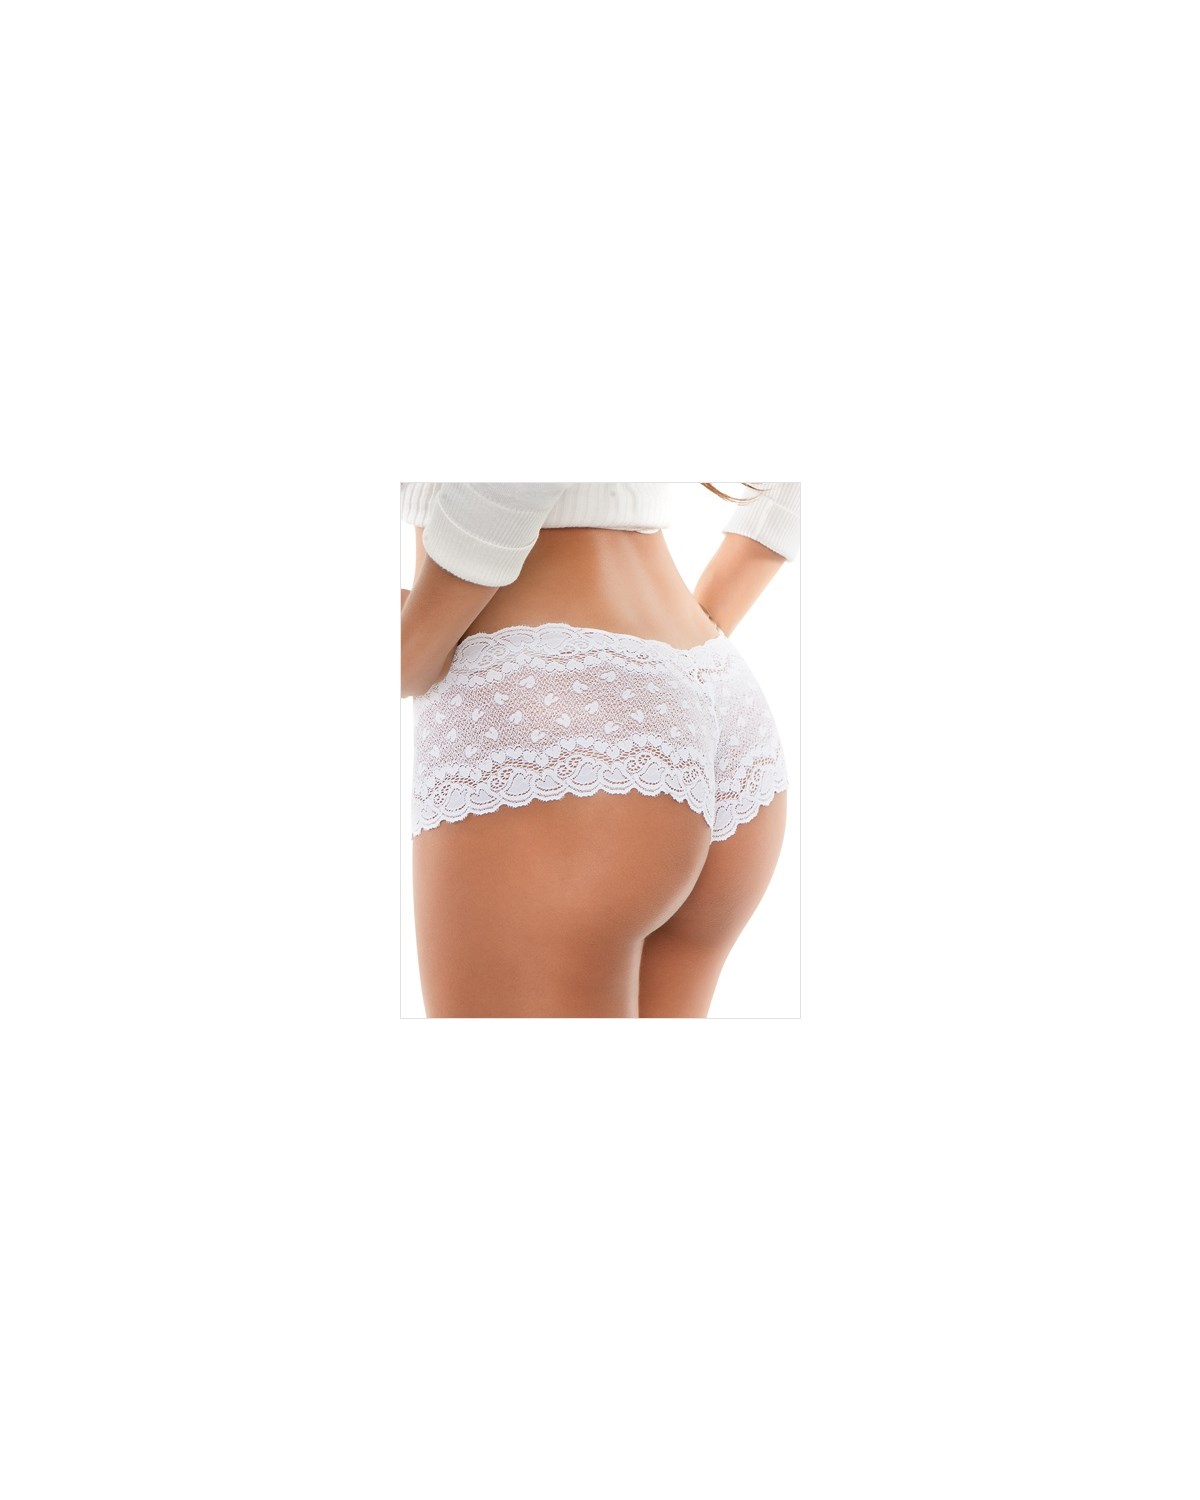 hiphugger style panty in modern lace-000- White-MainImage